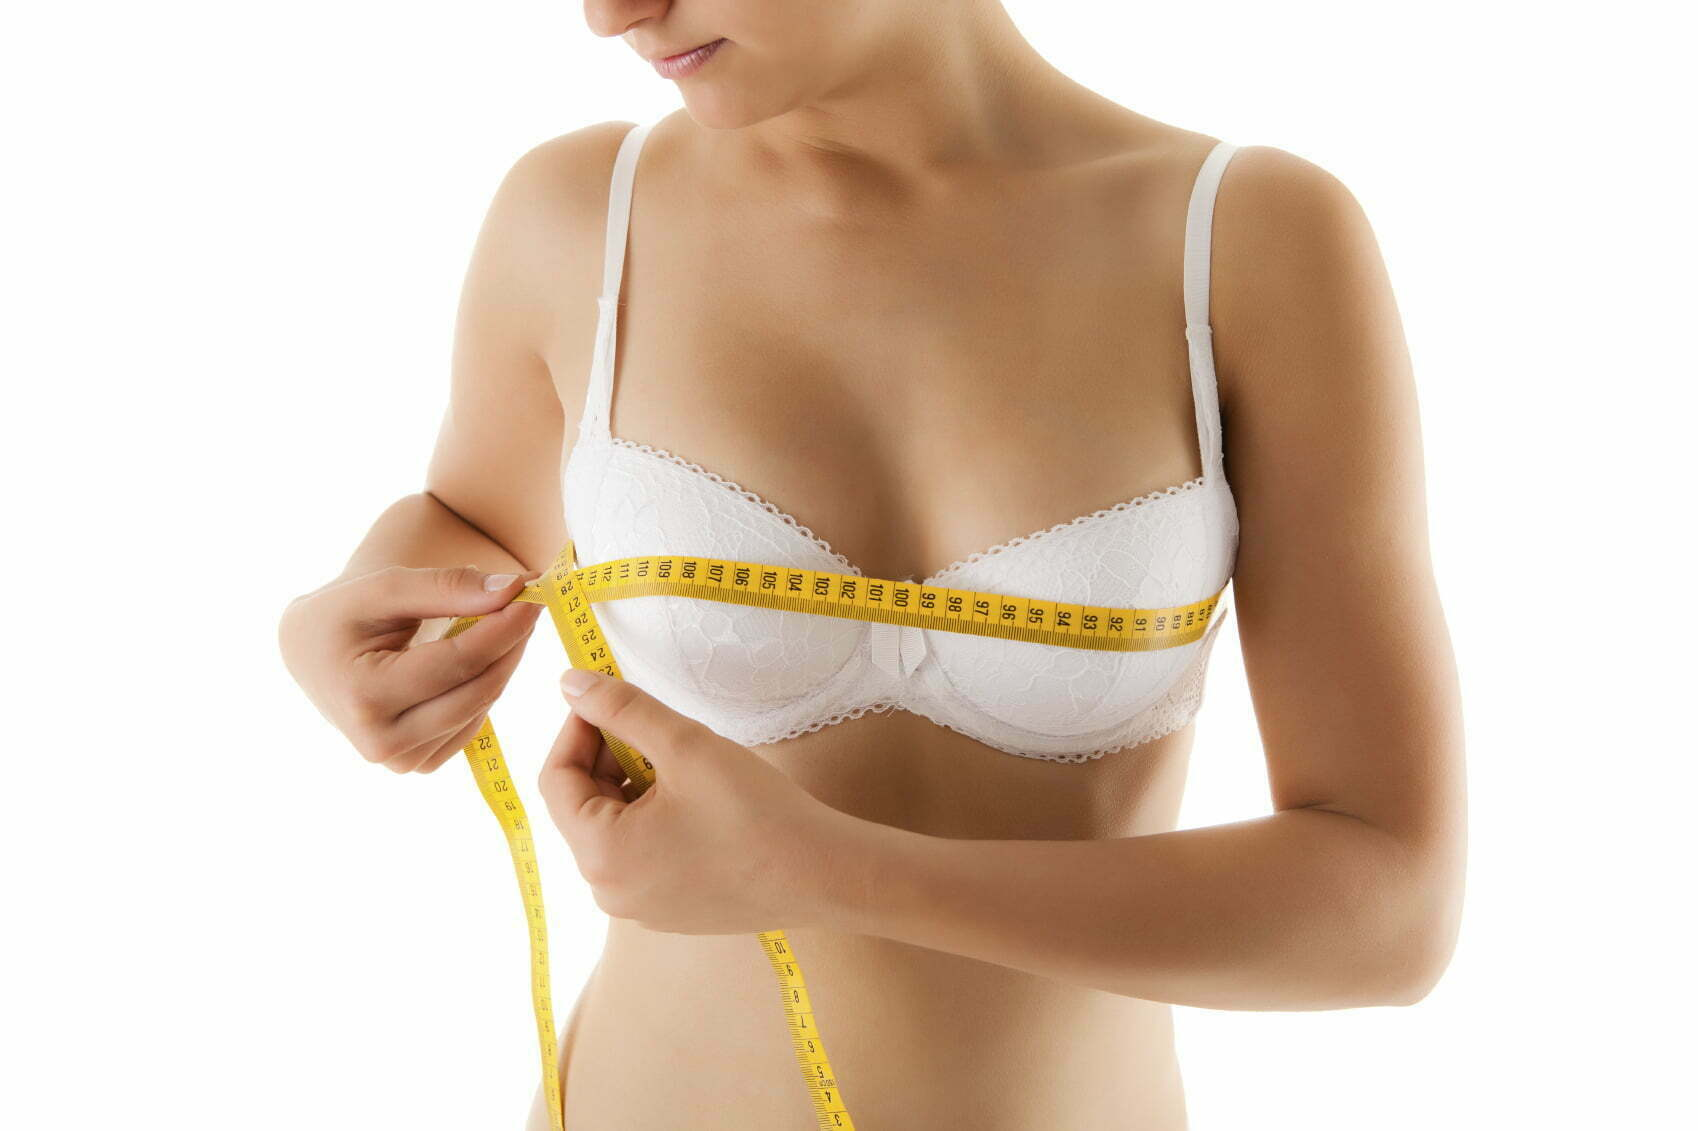 Why Opt for Breast Augmentation?